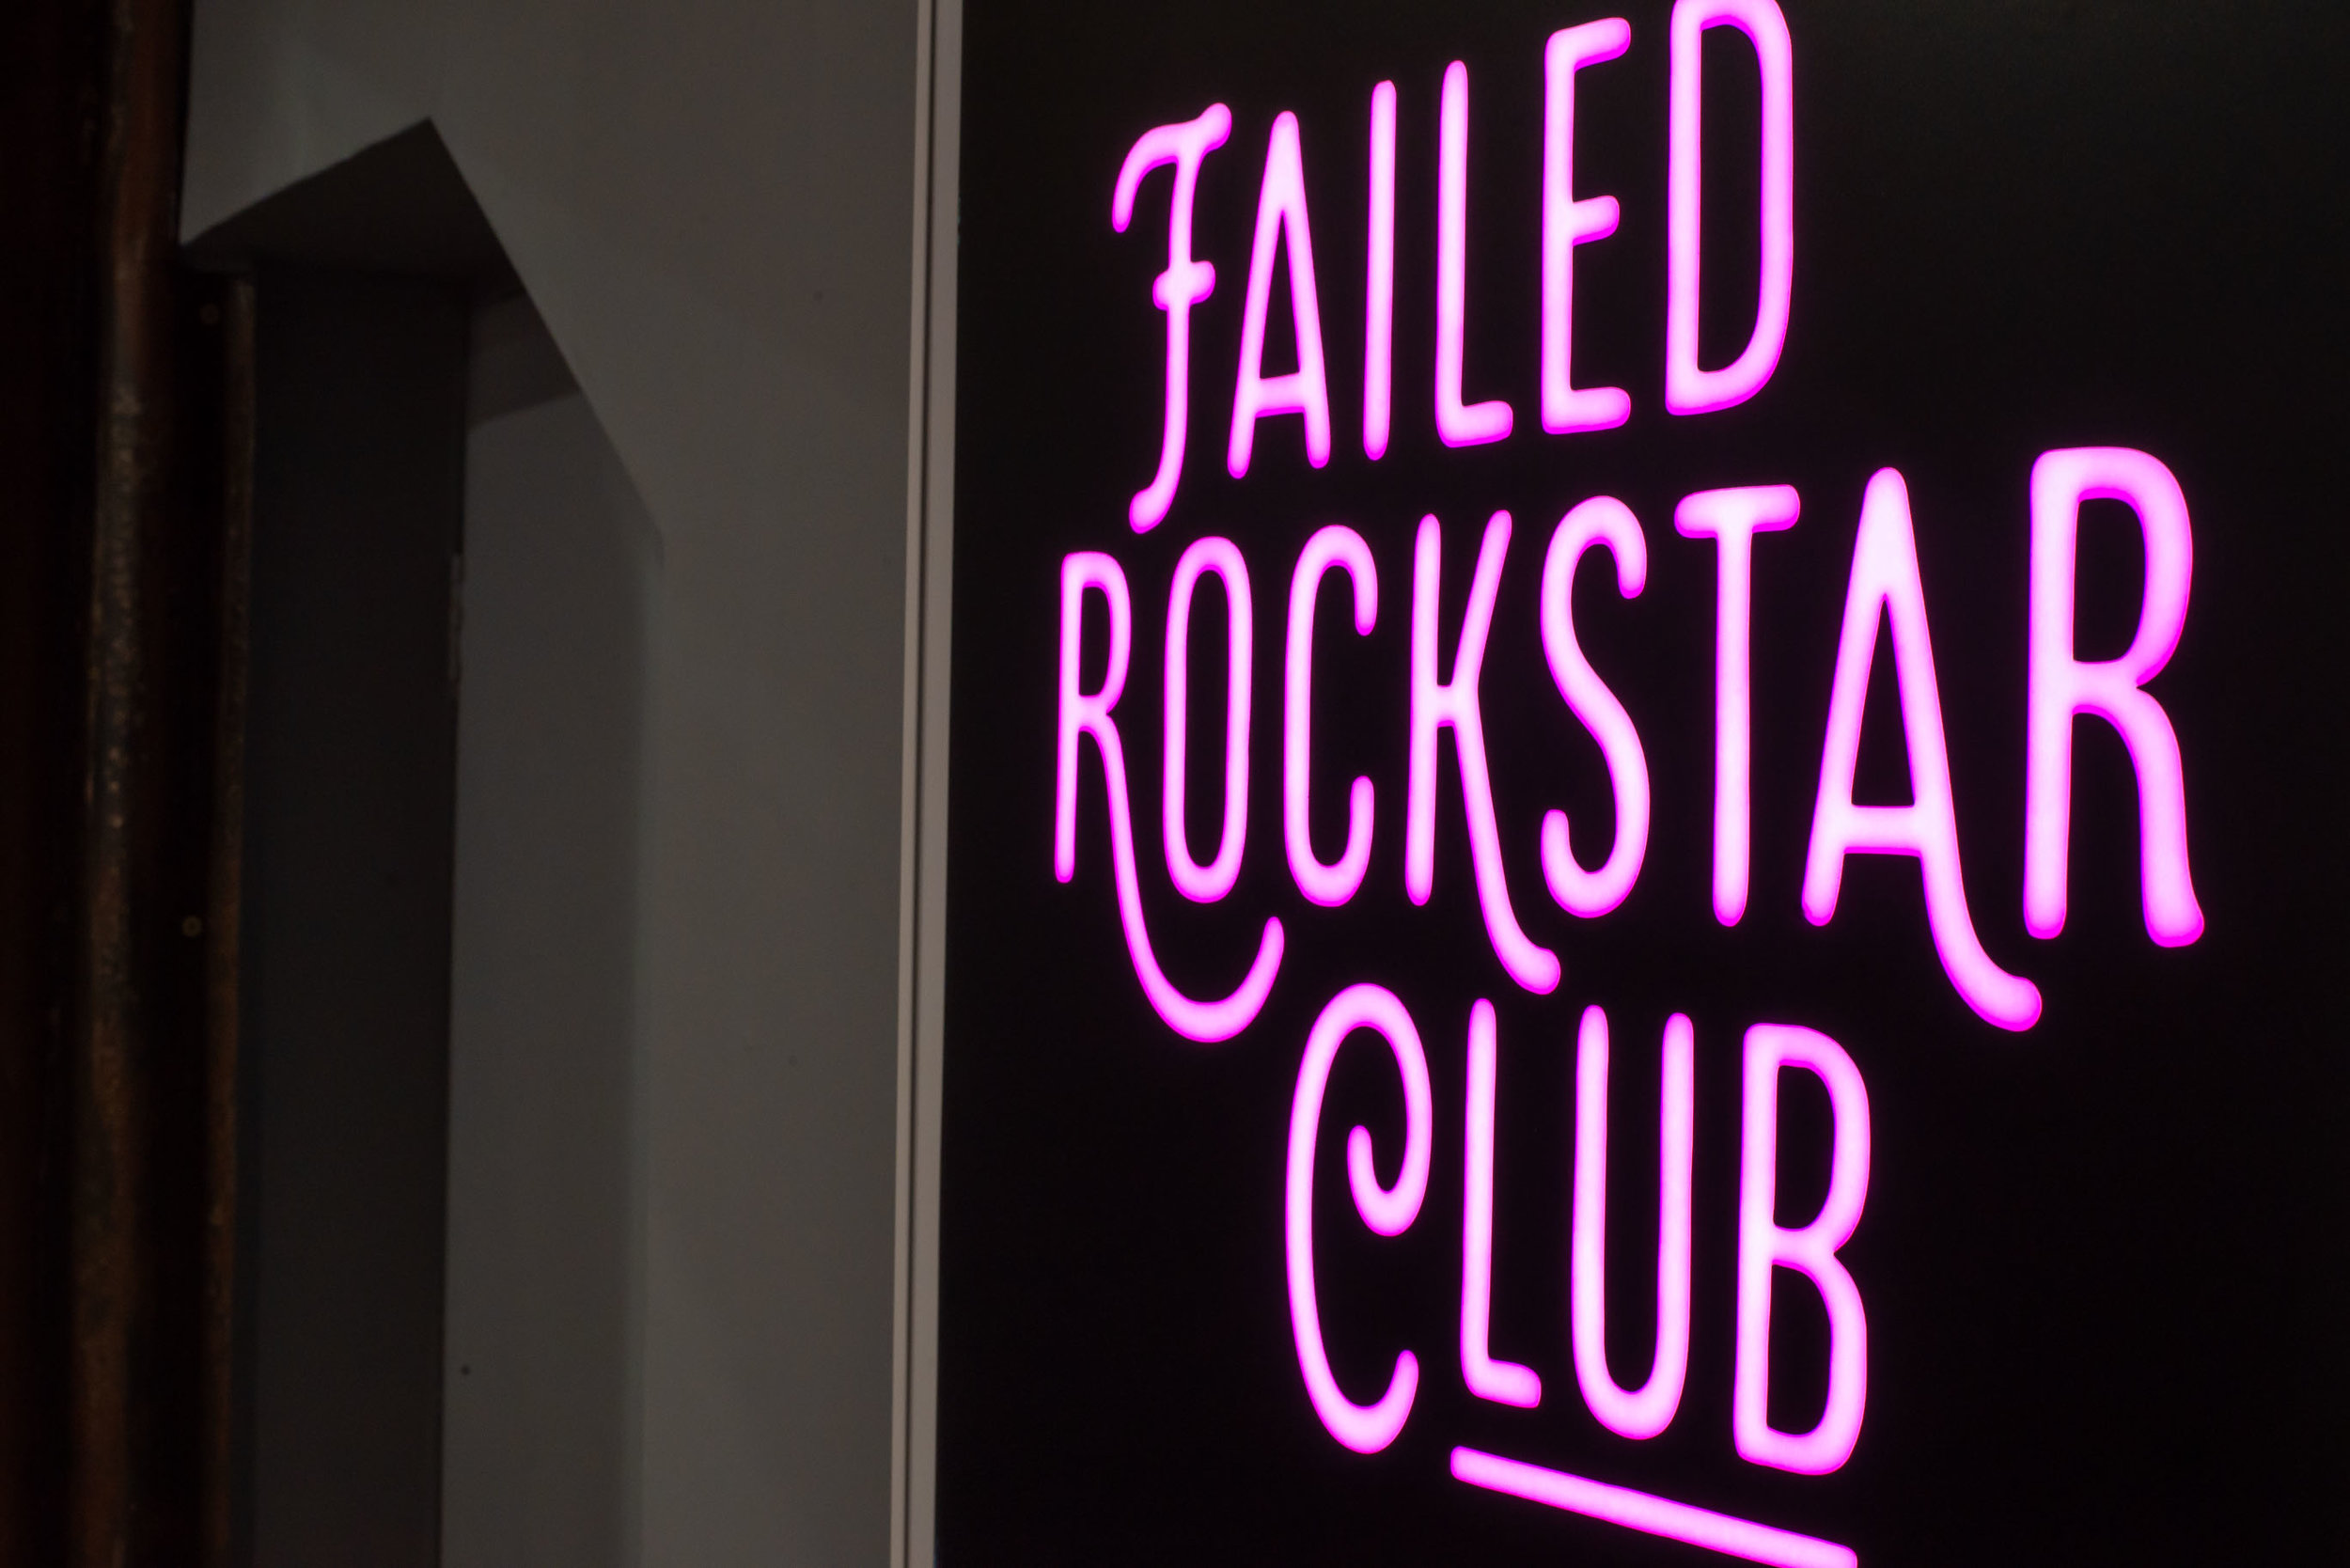 failed rockstar club